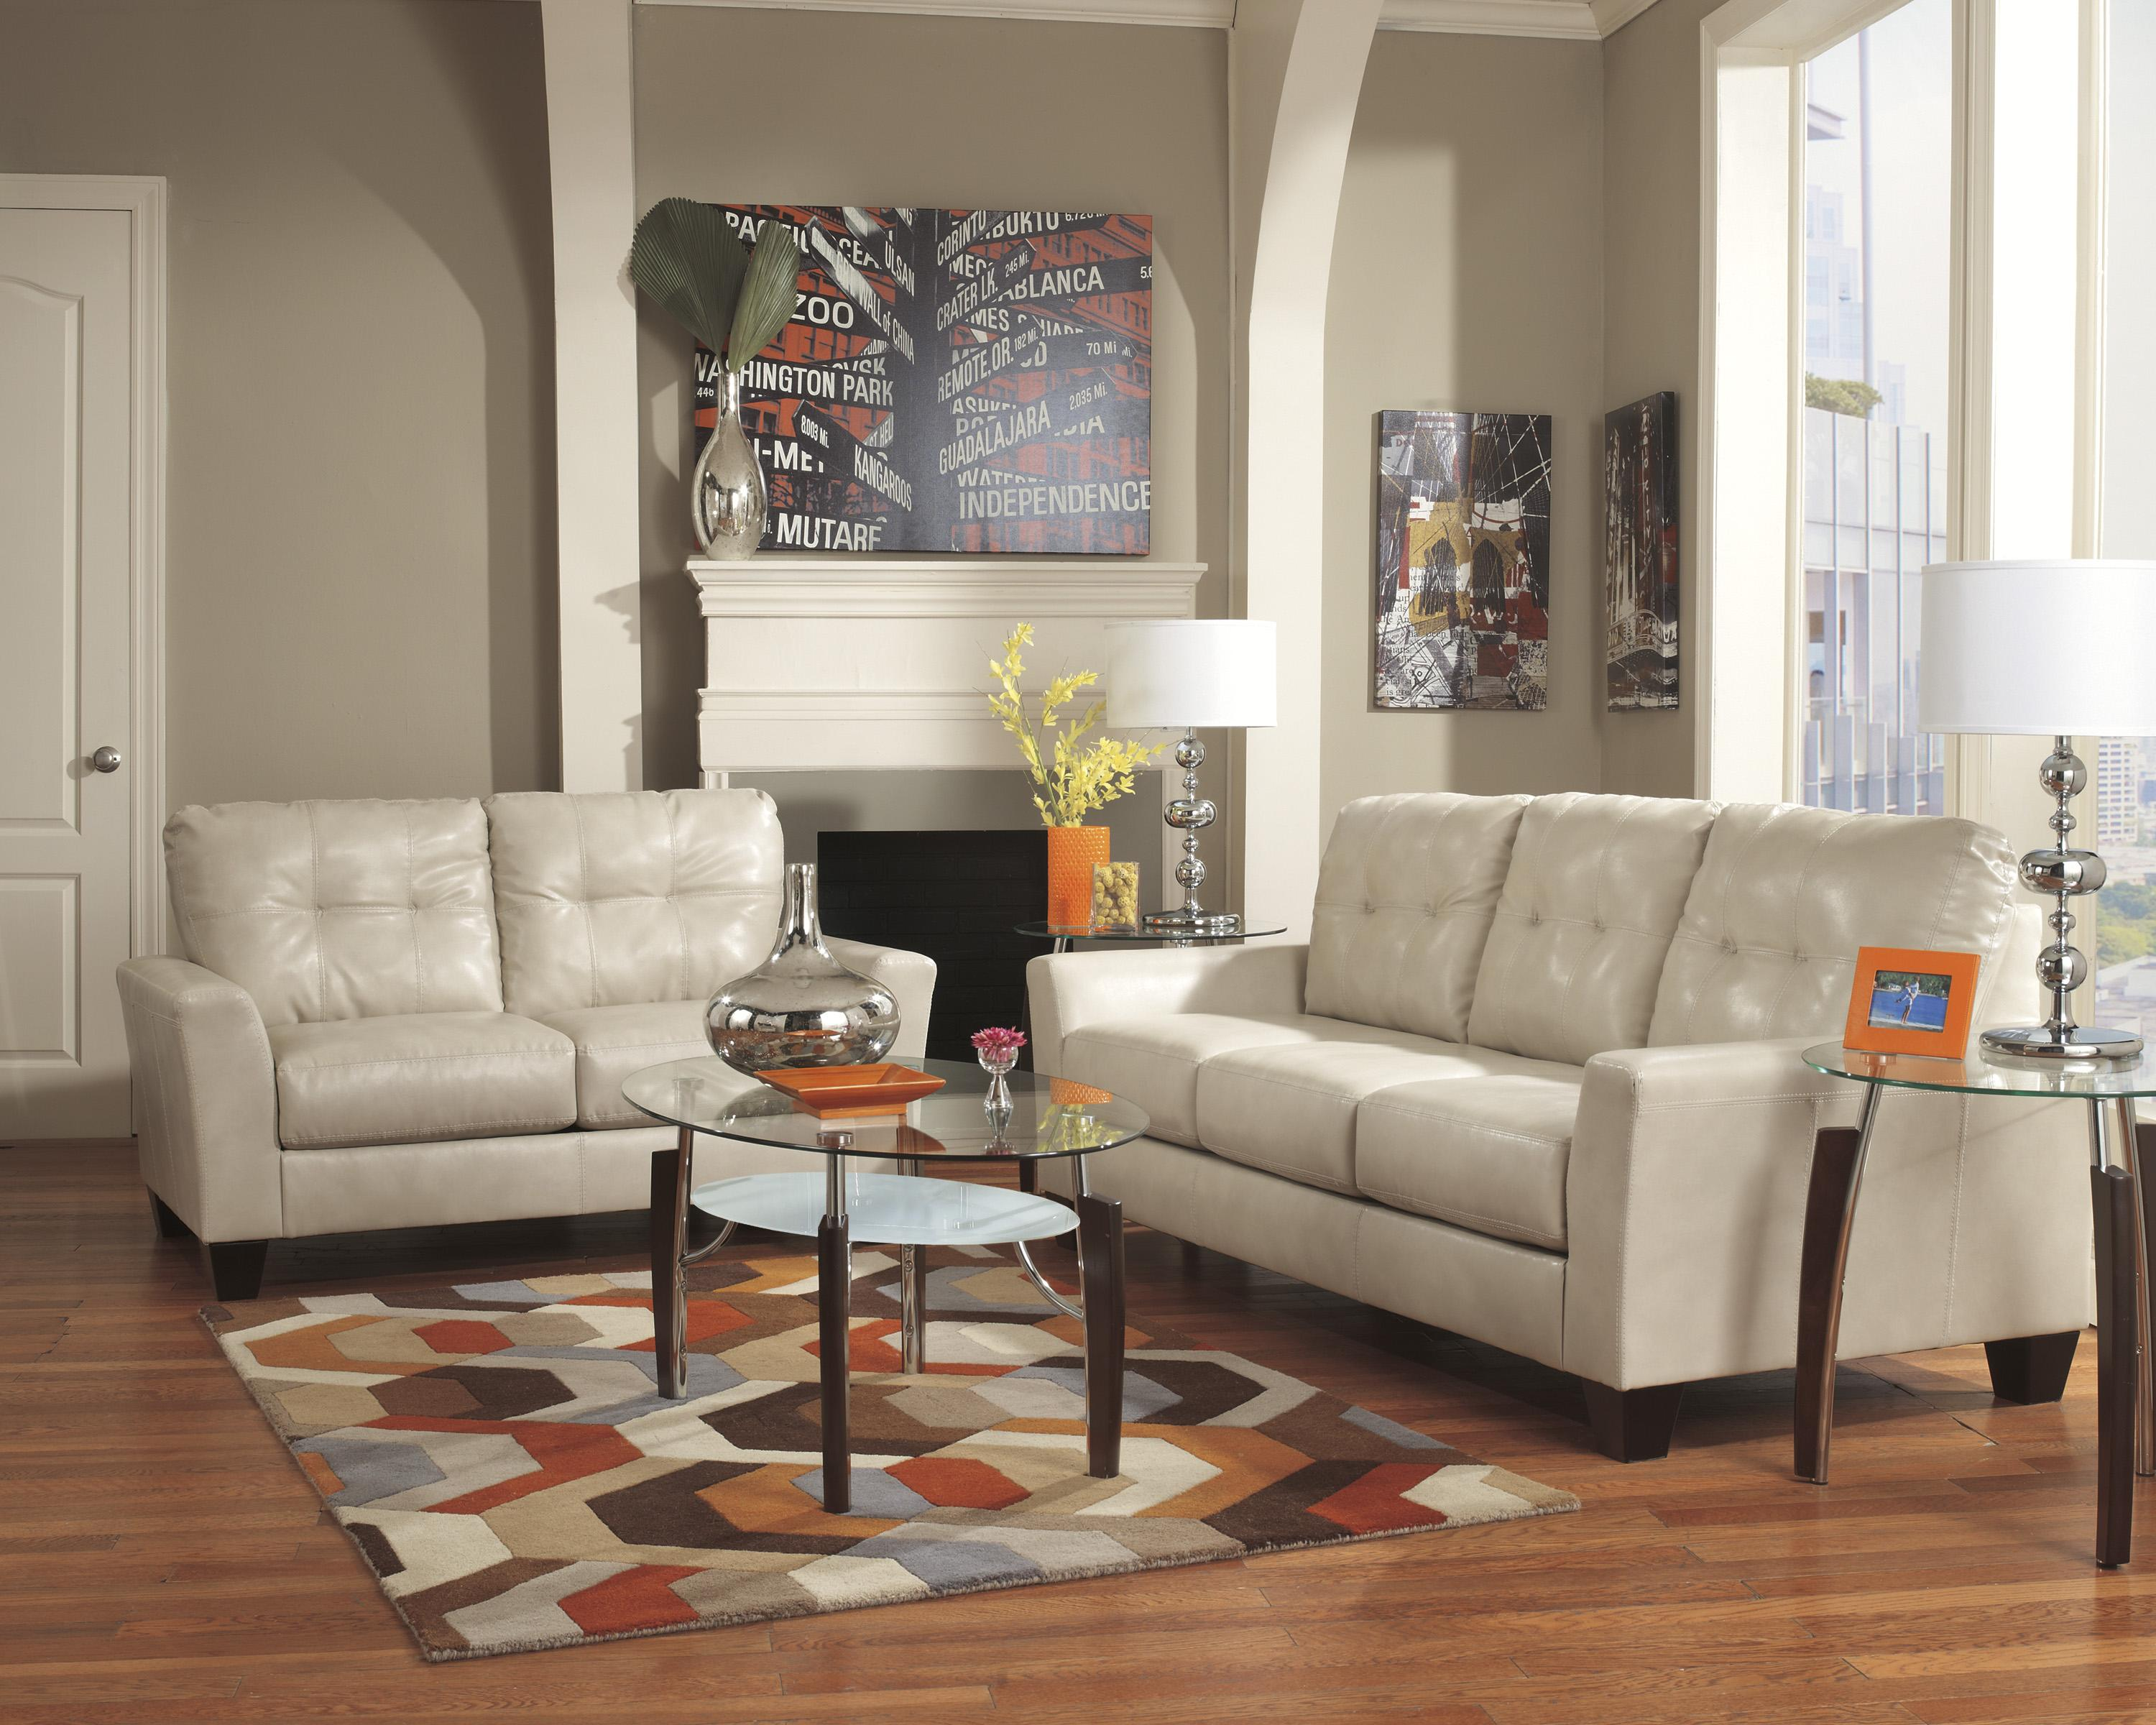 Ashley Furniture Paulie Living Room Set In Taupe Benchcraft Paulie DuraBlend® - Taupe Stationary Living Room Group ...